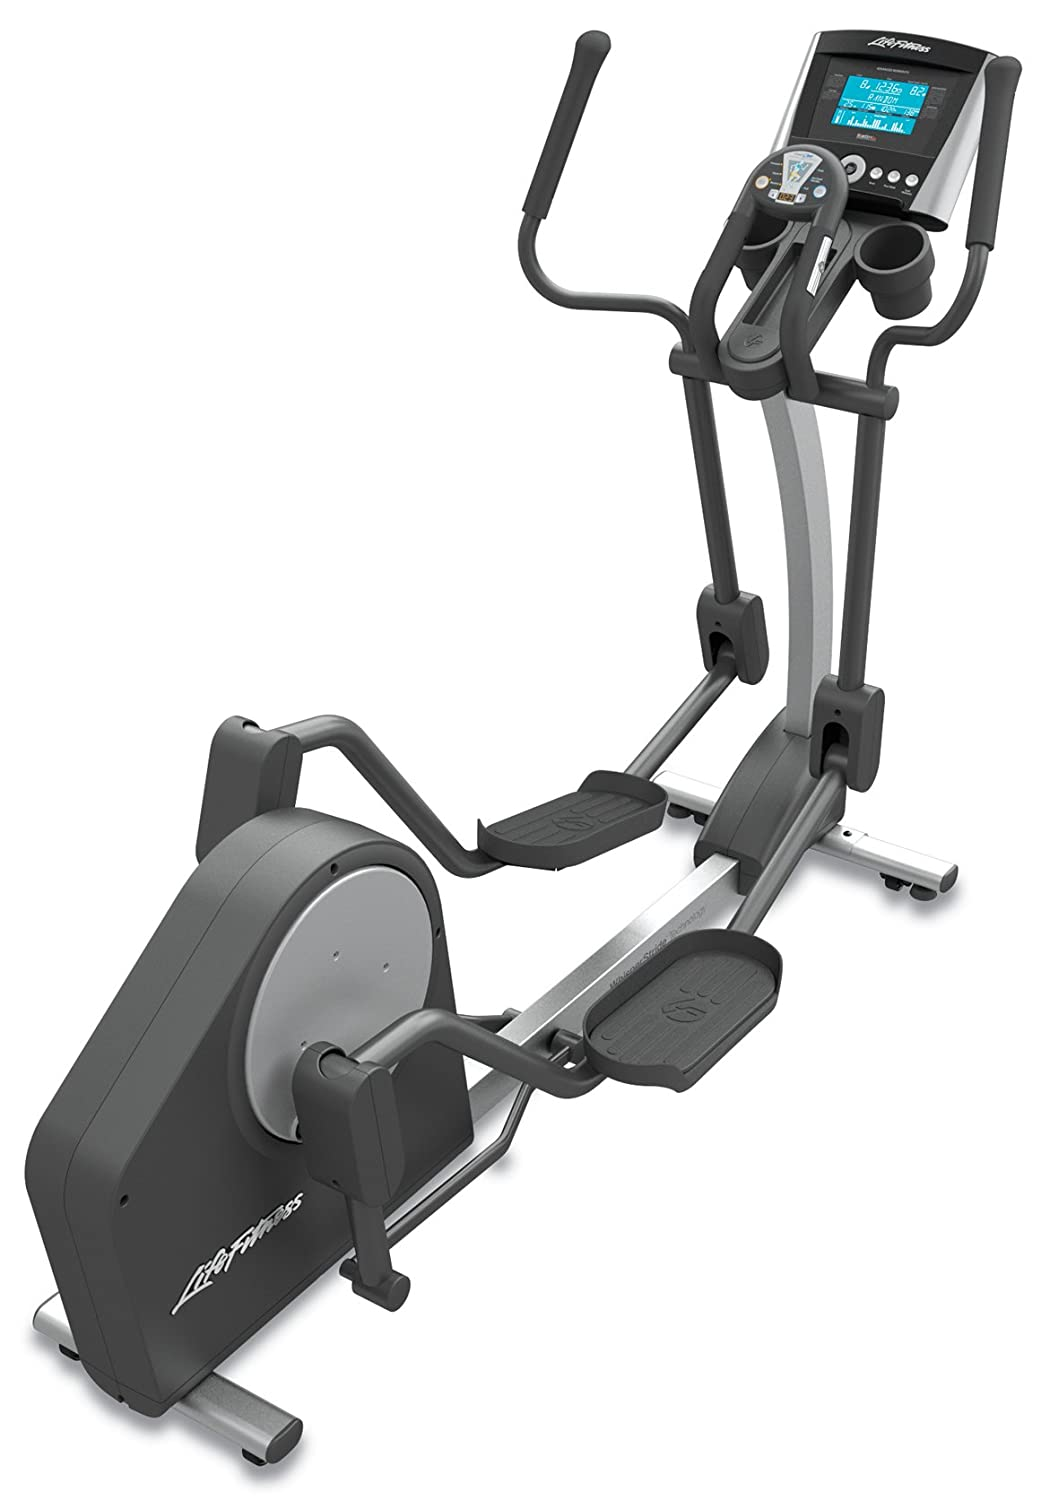 Life Fitness x3 elíptica cross-trainer con Advanced Consola de entrenamiento: Amazon.es: Deportes y aire libre